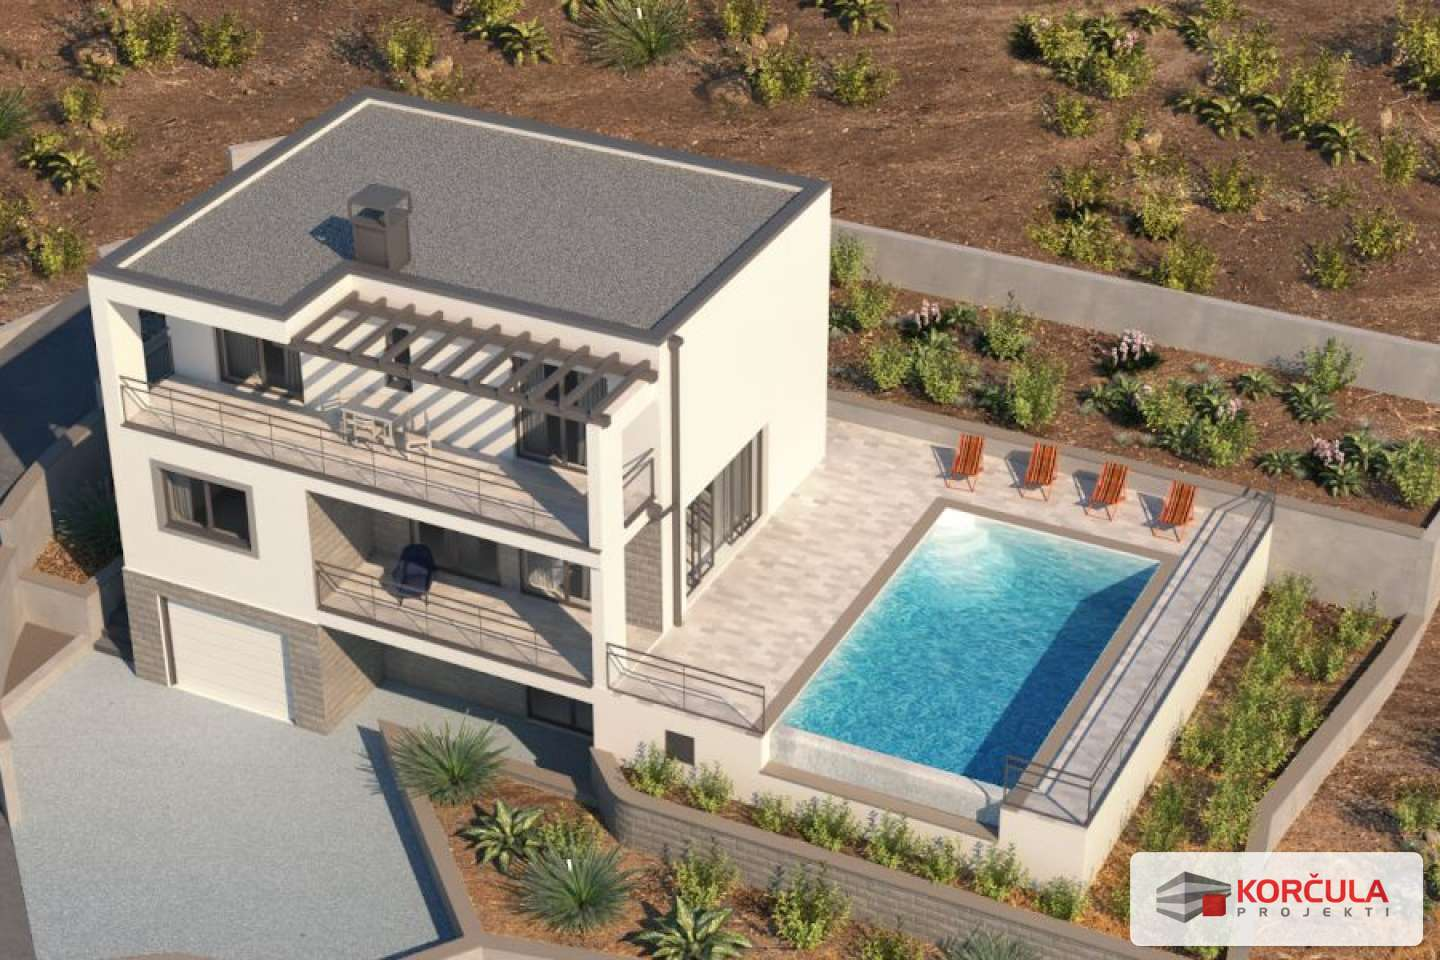 Building land with greenwood and with the luxury holiday home building project